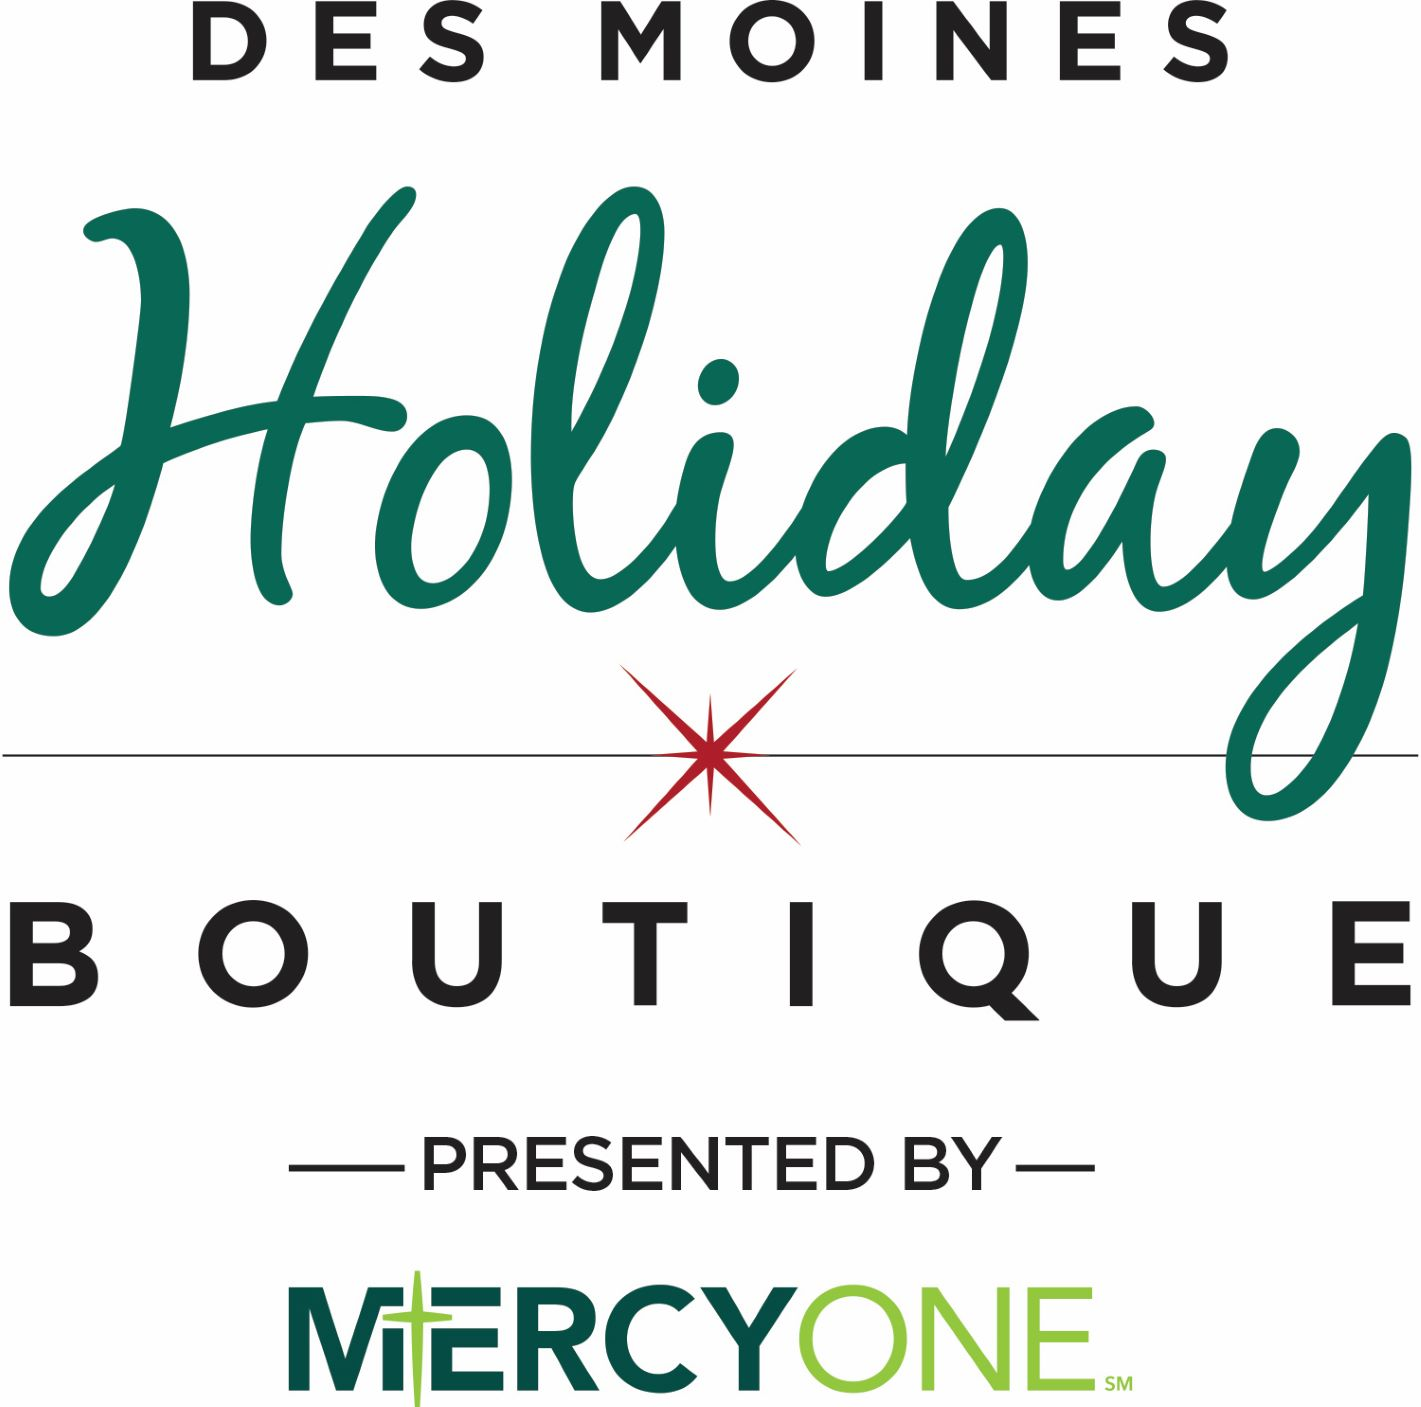 Enter to Win 4 Admission Passes to The Des Moines Holiday Boutique!